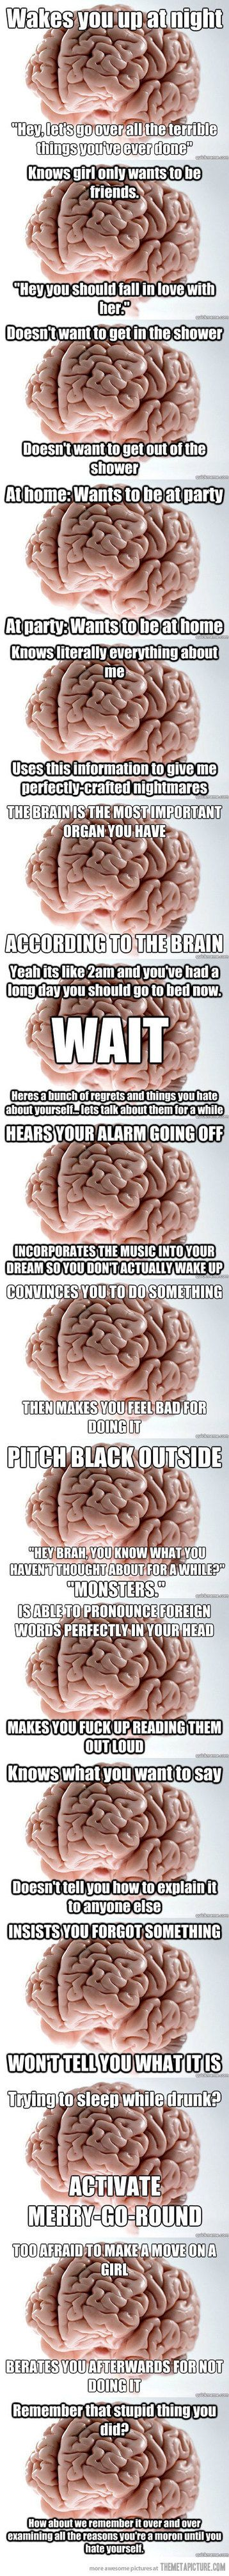 Reasons why your brain is a jerk, especially   right now as I'm wanting to sleep so I'm not late for work.